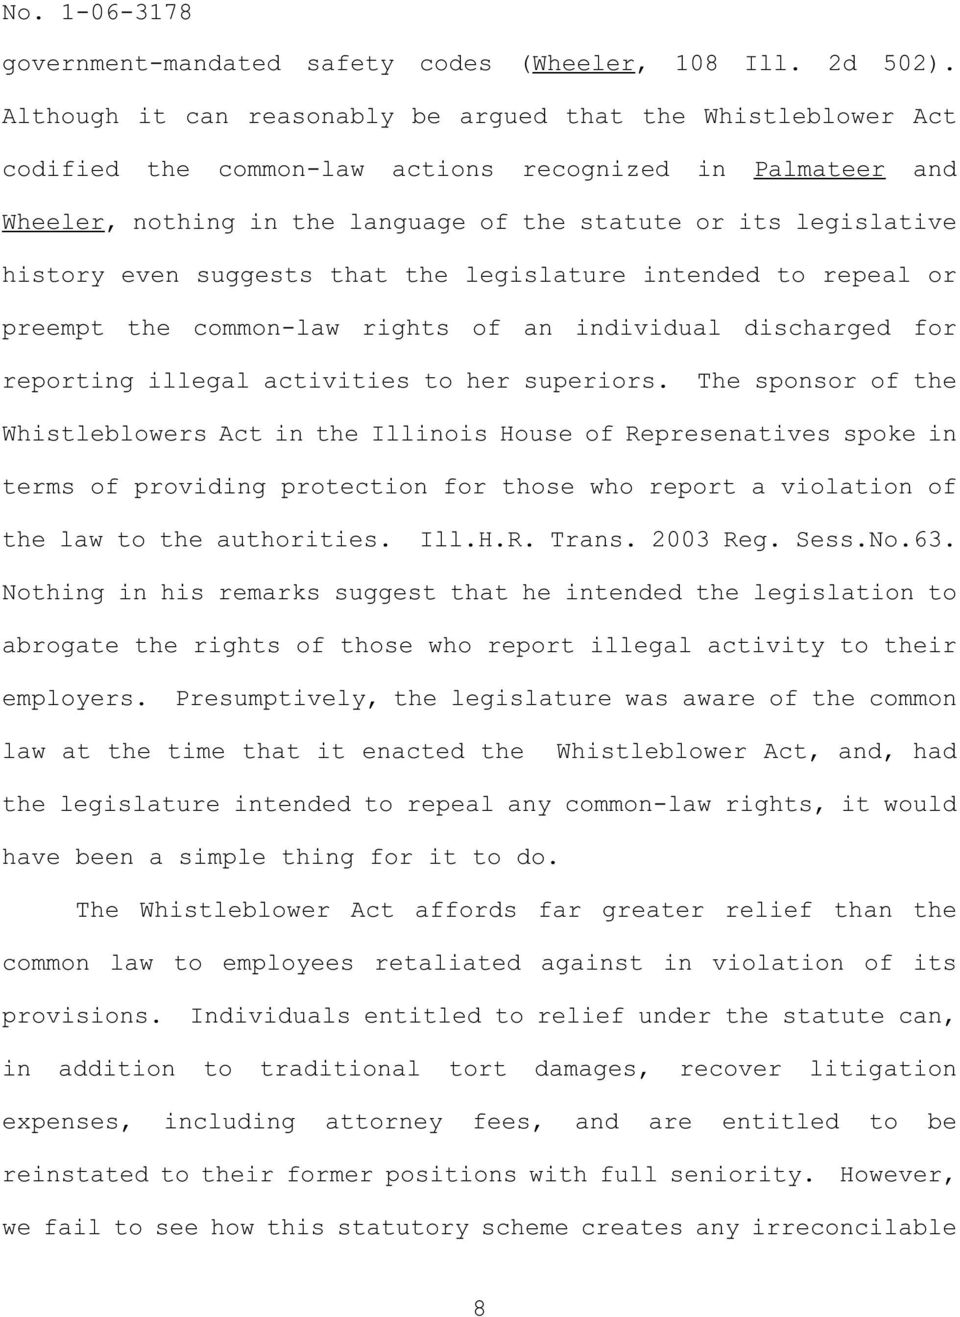 even suggests that the legislature intended to repeal or preempt the common-law rights of an individual discharged for reporting illegal activities to her superiors.